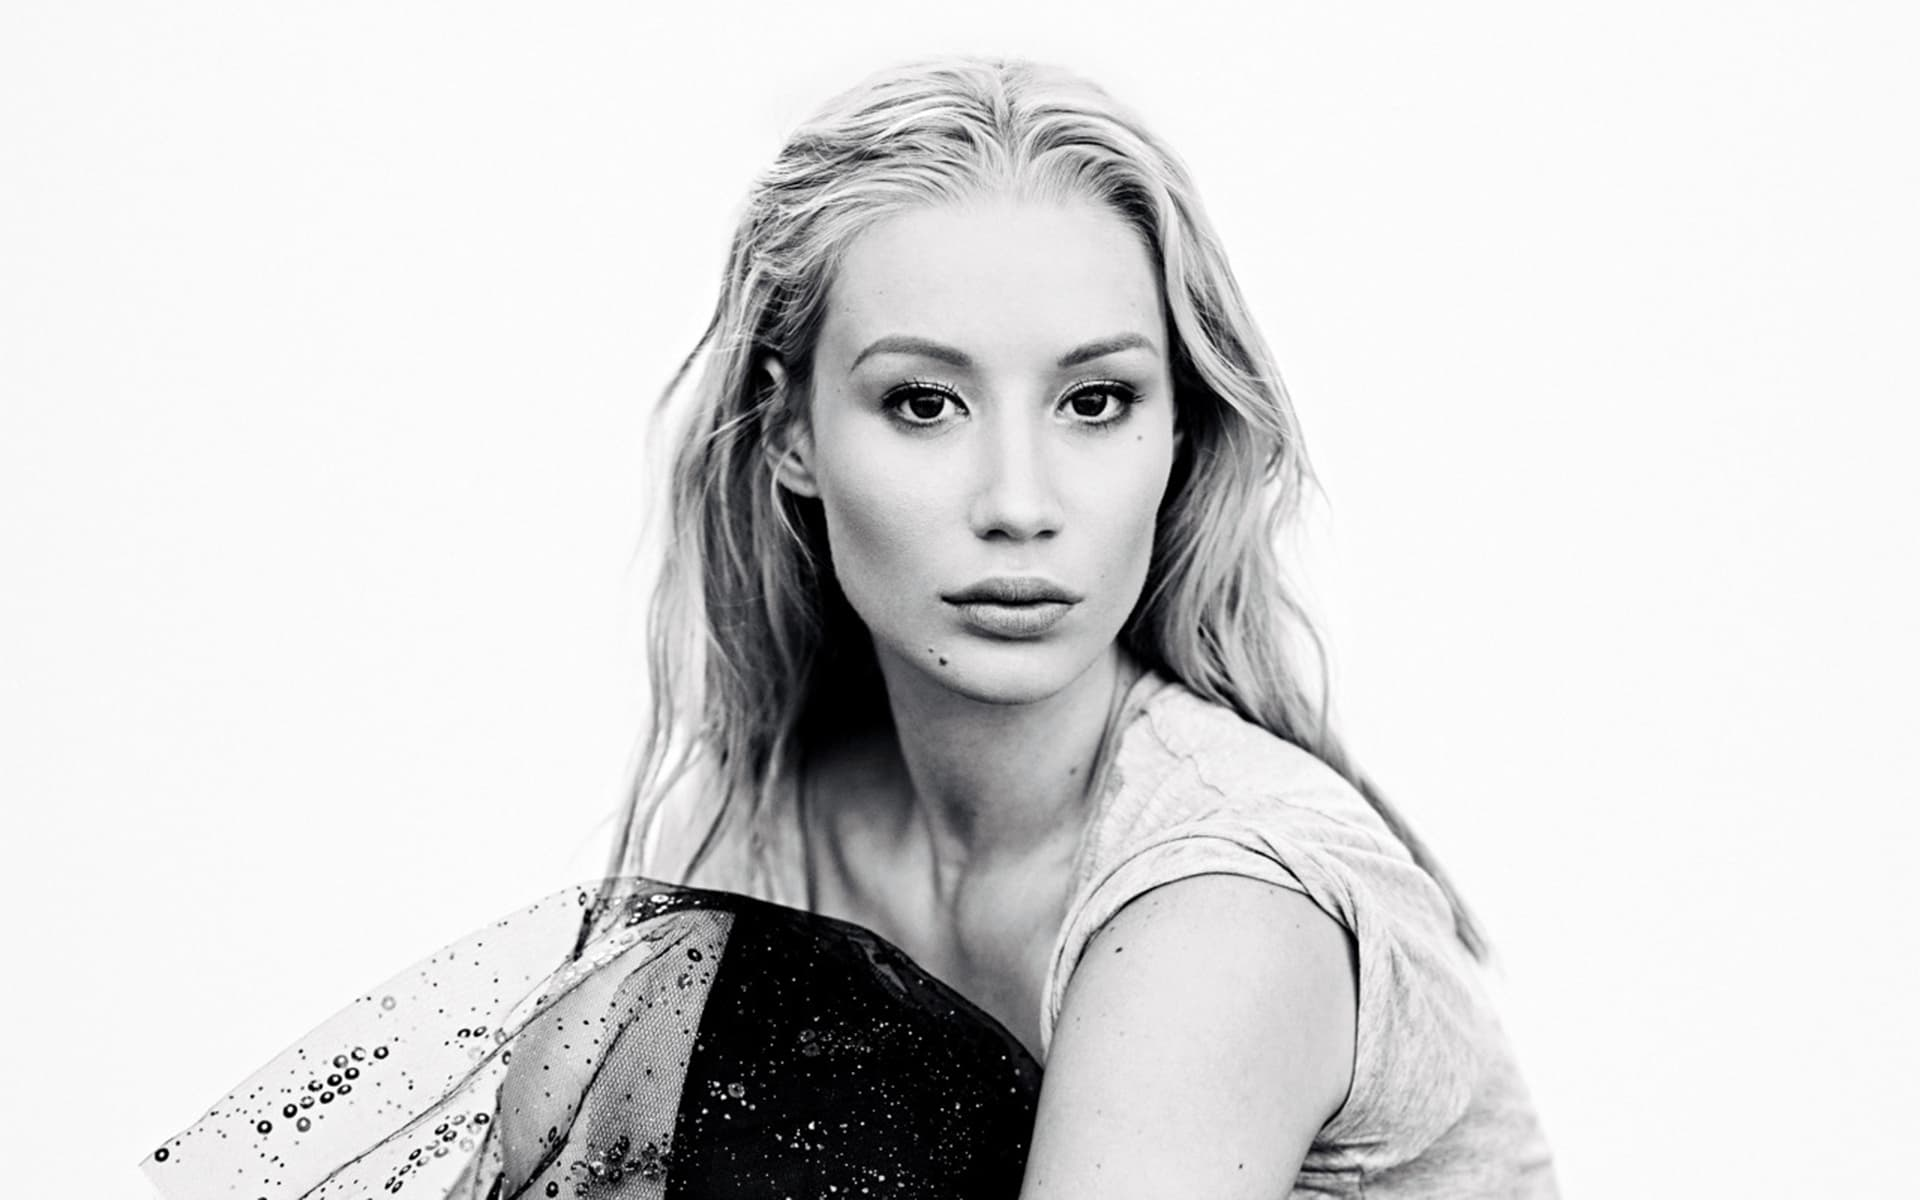 monochrome iggy azalea wallpaper 62193